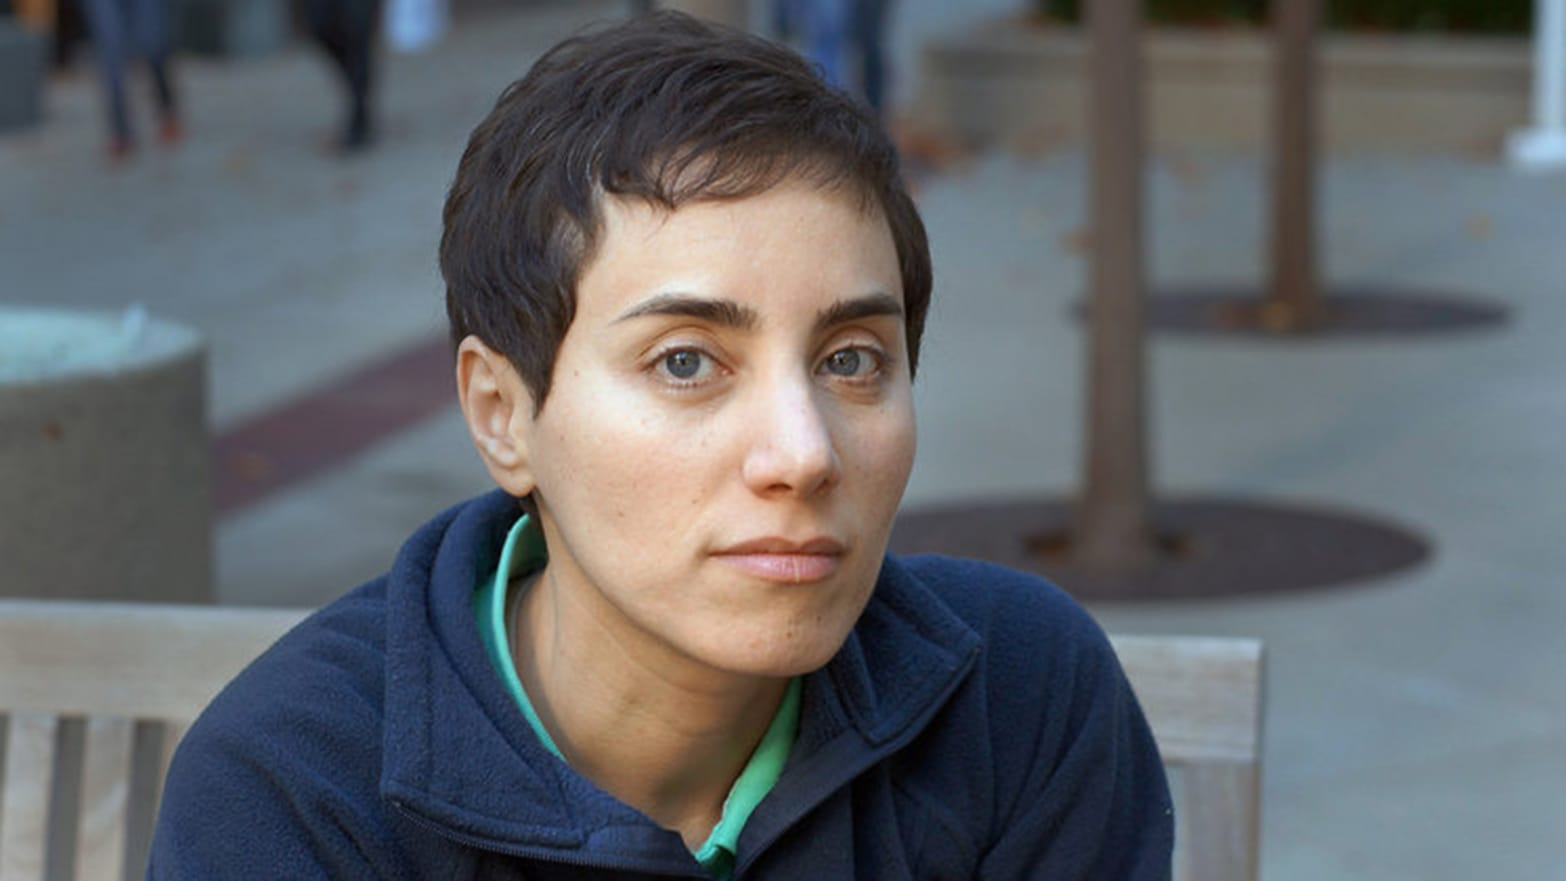 Iran Photoshops a Veil on Its Deceased Math Genius Maryam Mirzakhani